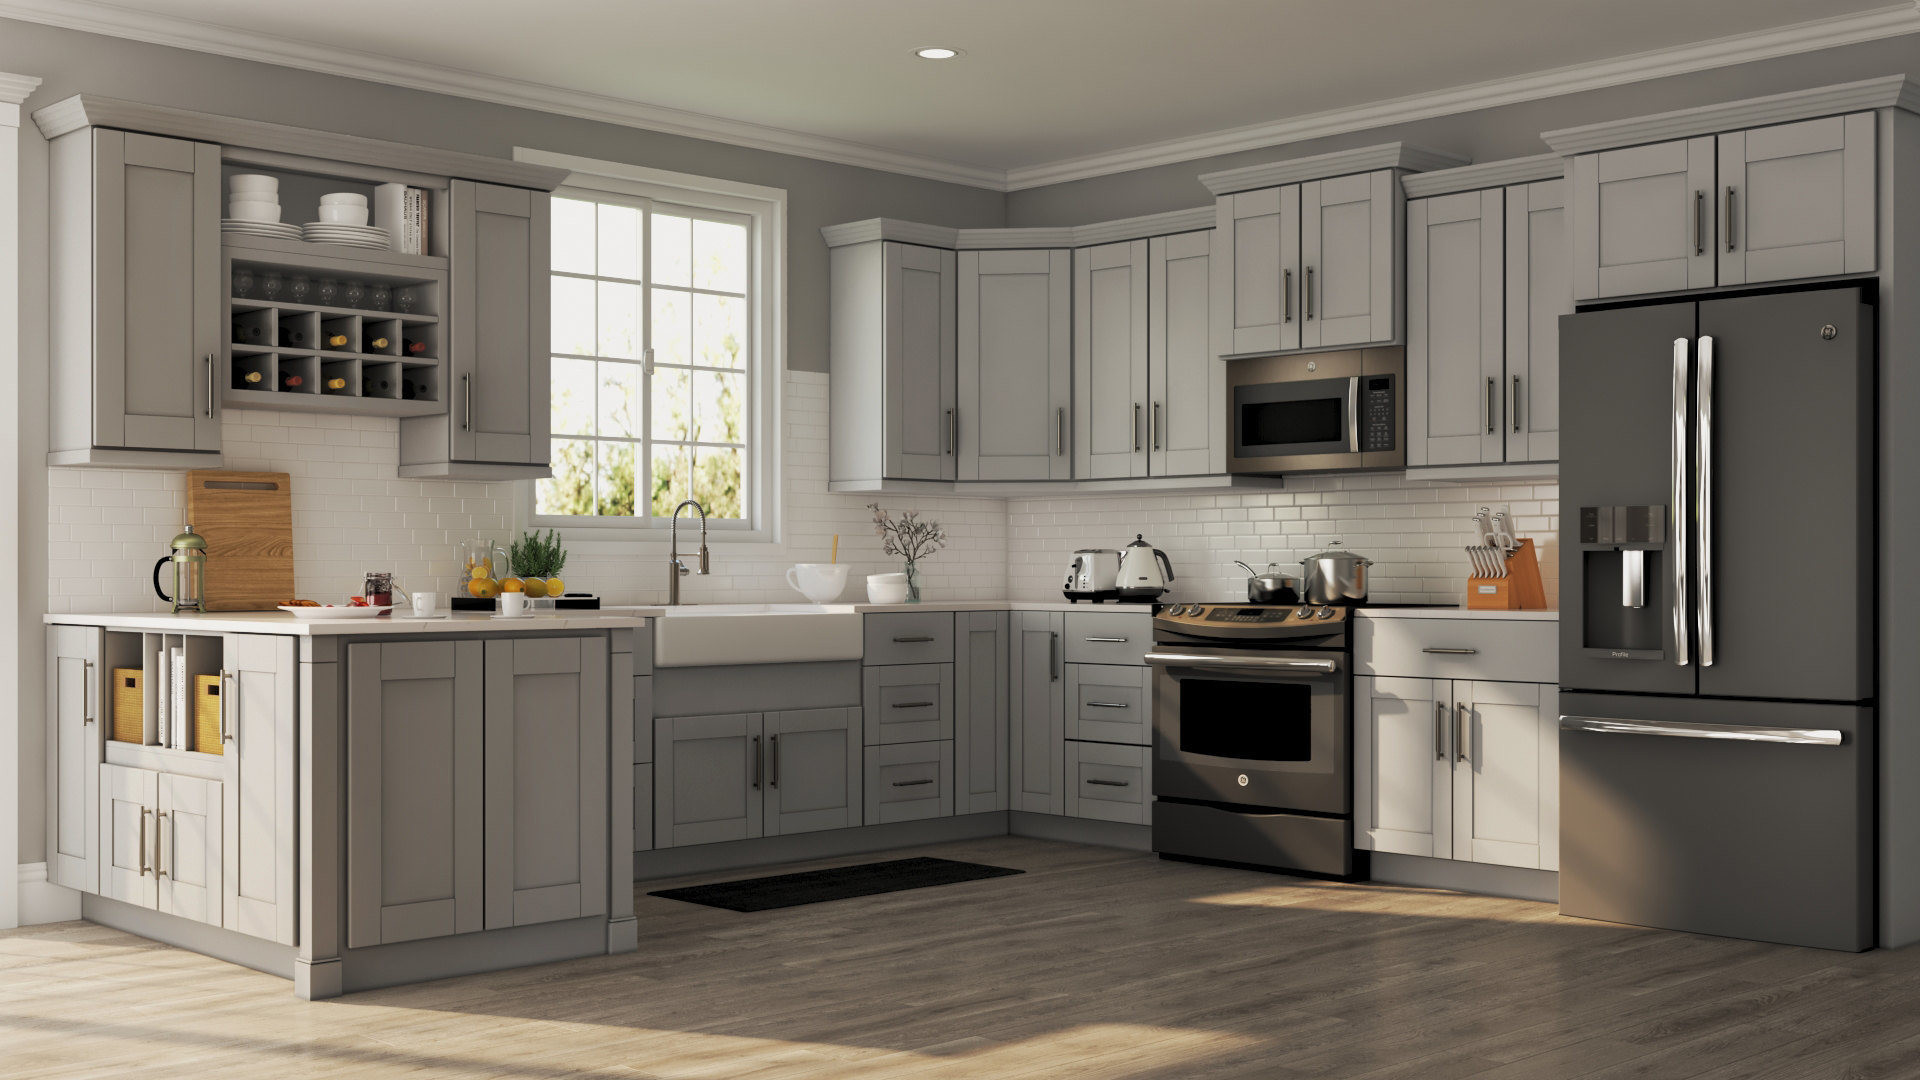 Wall Cabinet Kitchen  Shaker Wall Cabinets in Dove Gray – Kitchen – The Home Depot